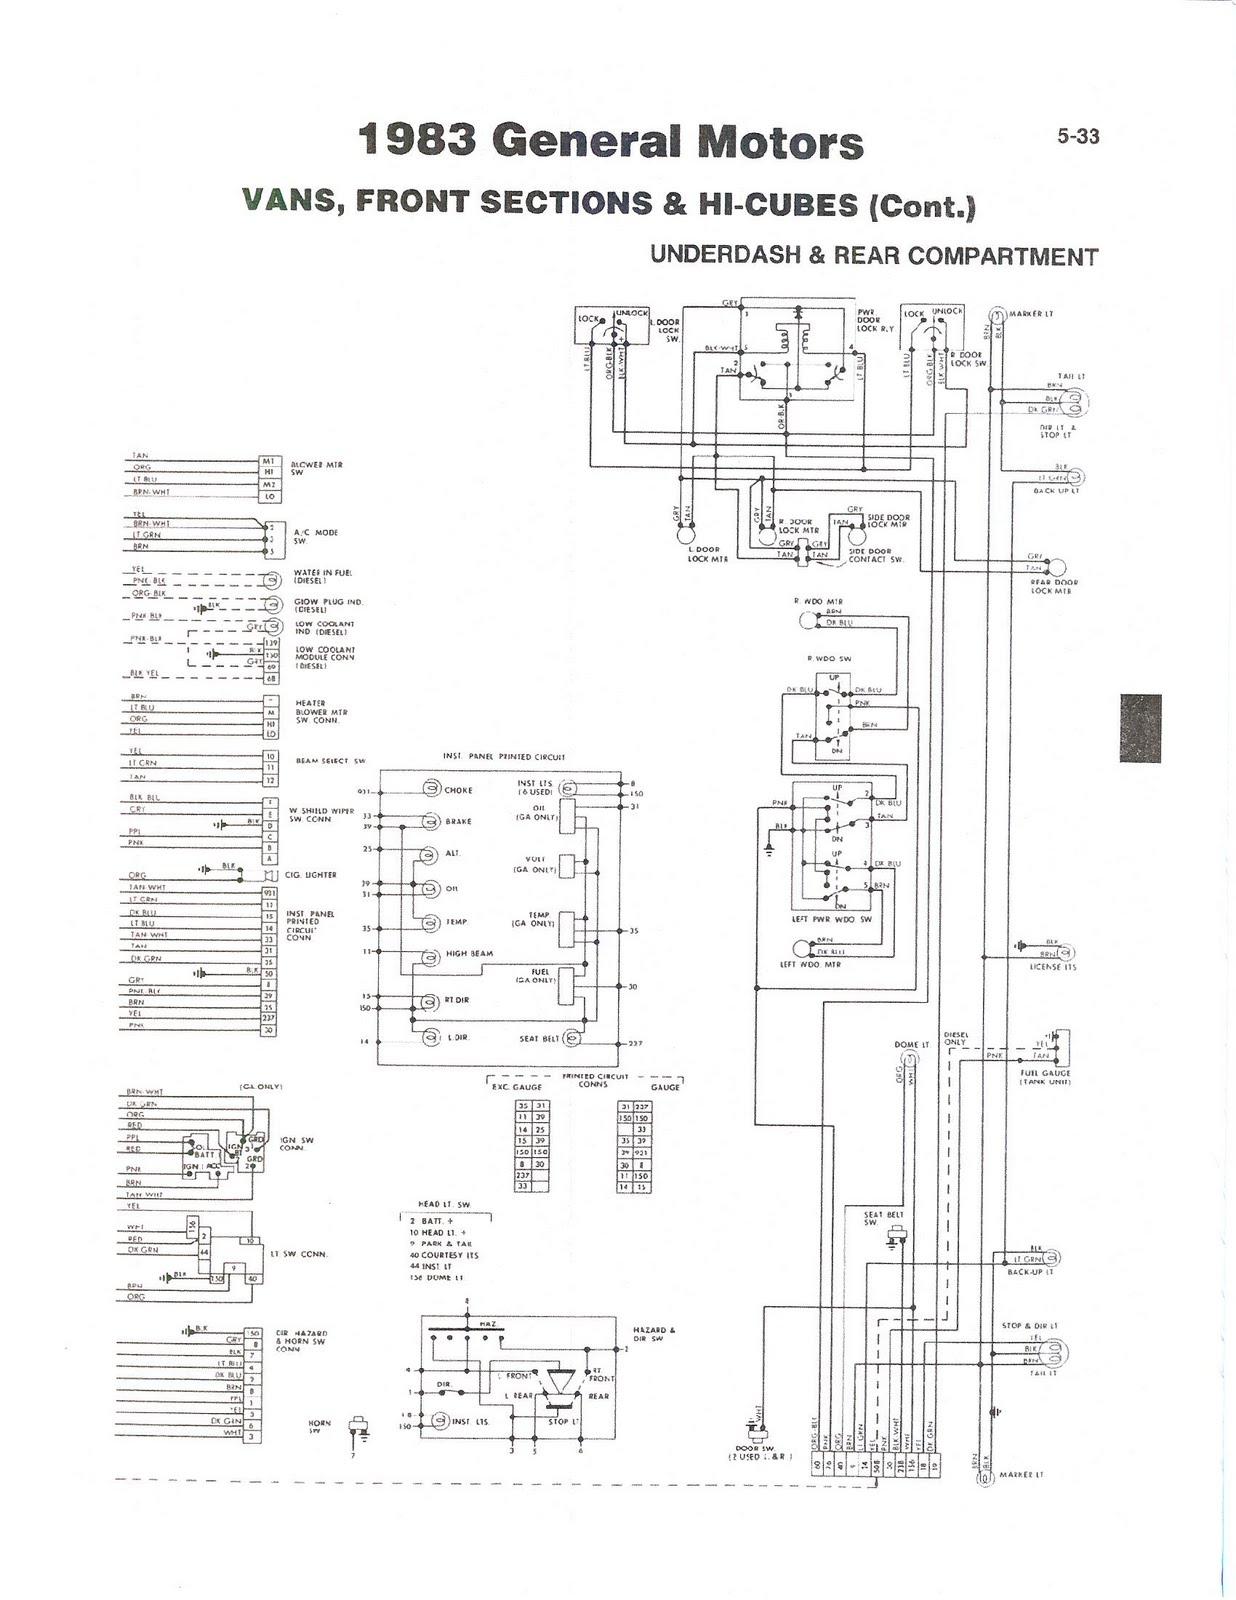 dash schematic wiring library 2003 Yukon Dash Schematic 83 fleetwood wiring diagram list of schematic circuit diagram \\u2022 goshen coach wiring diagrams winnebago